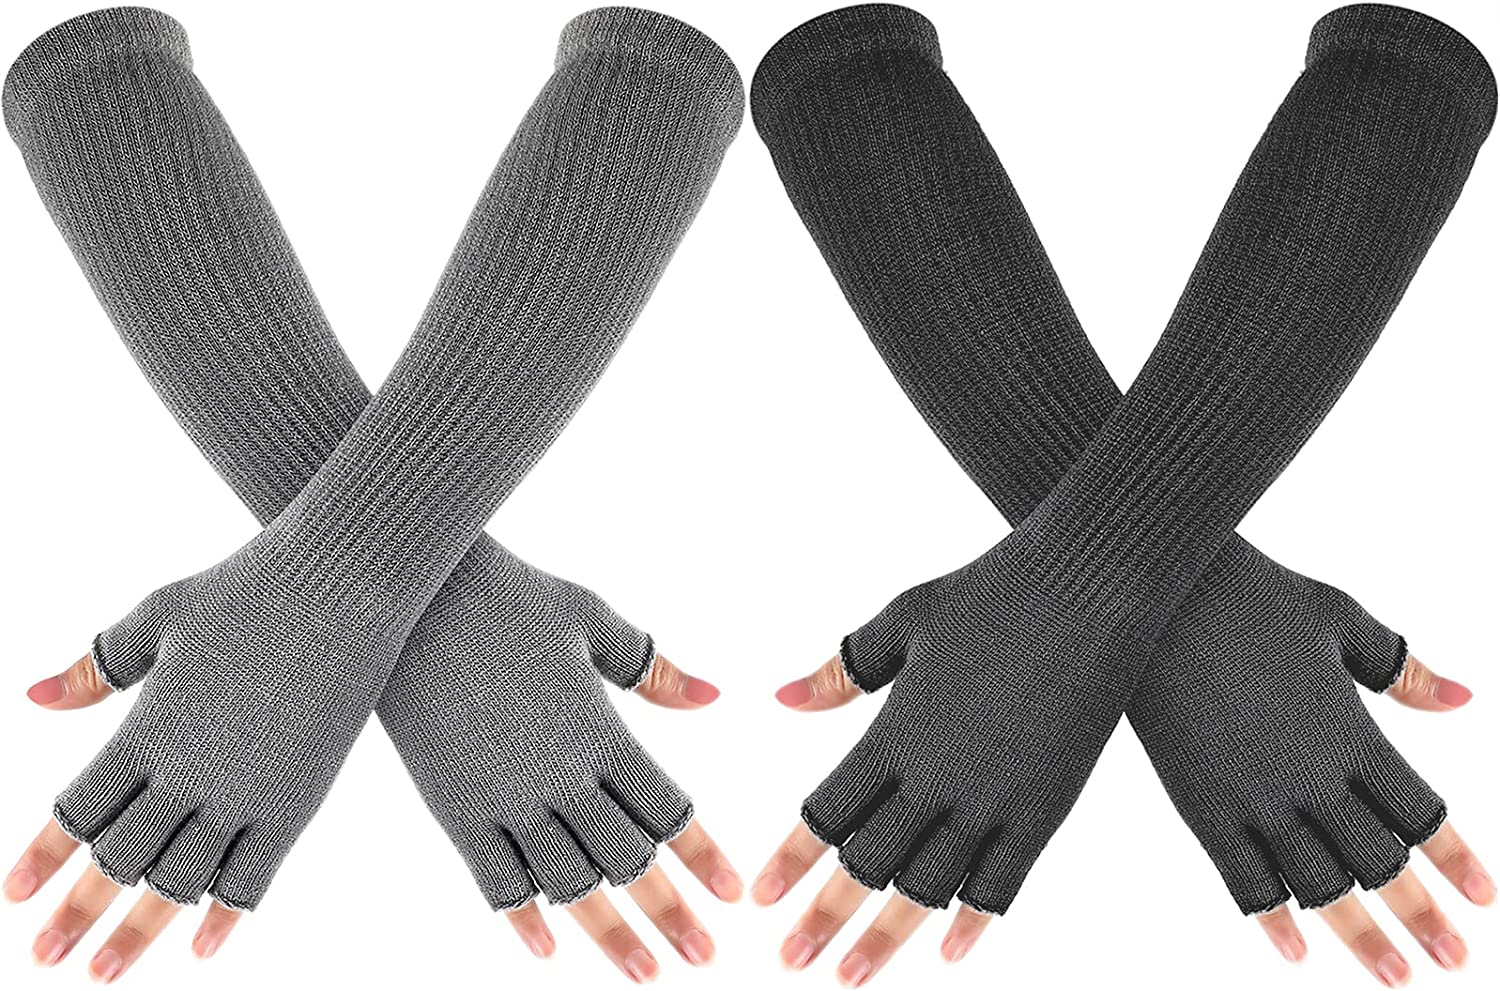 2 Pairs Winter Fingerless Mitten Long thermal Knitted Mittens Stretchy Knit Colored Mittens for Men Women, 11 Inch